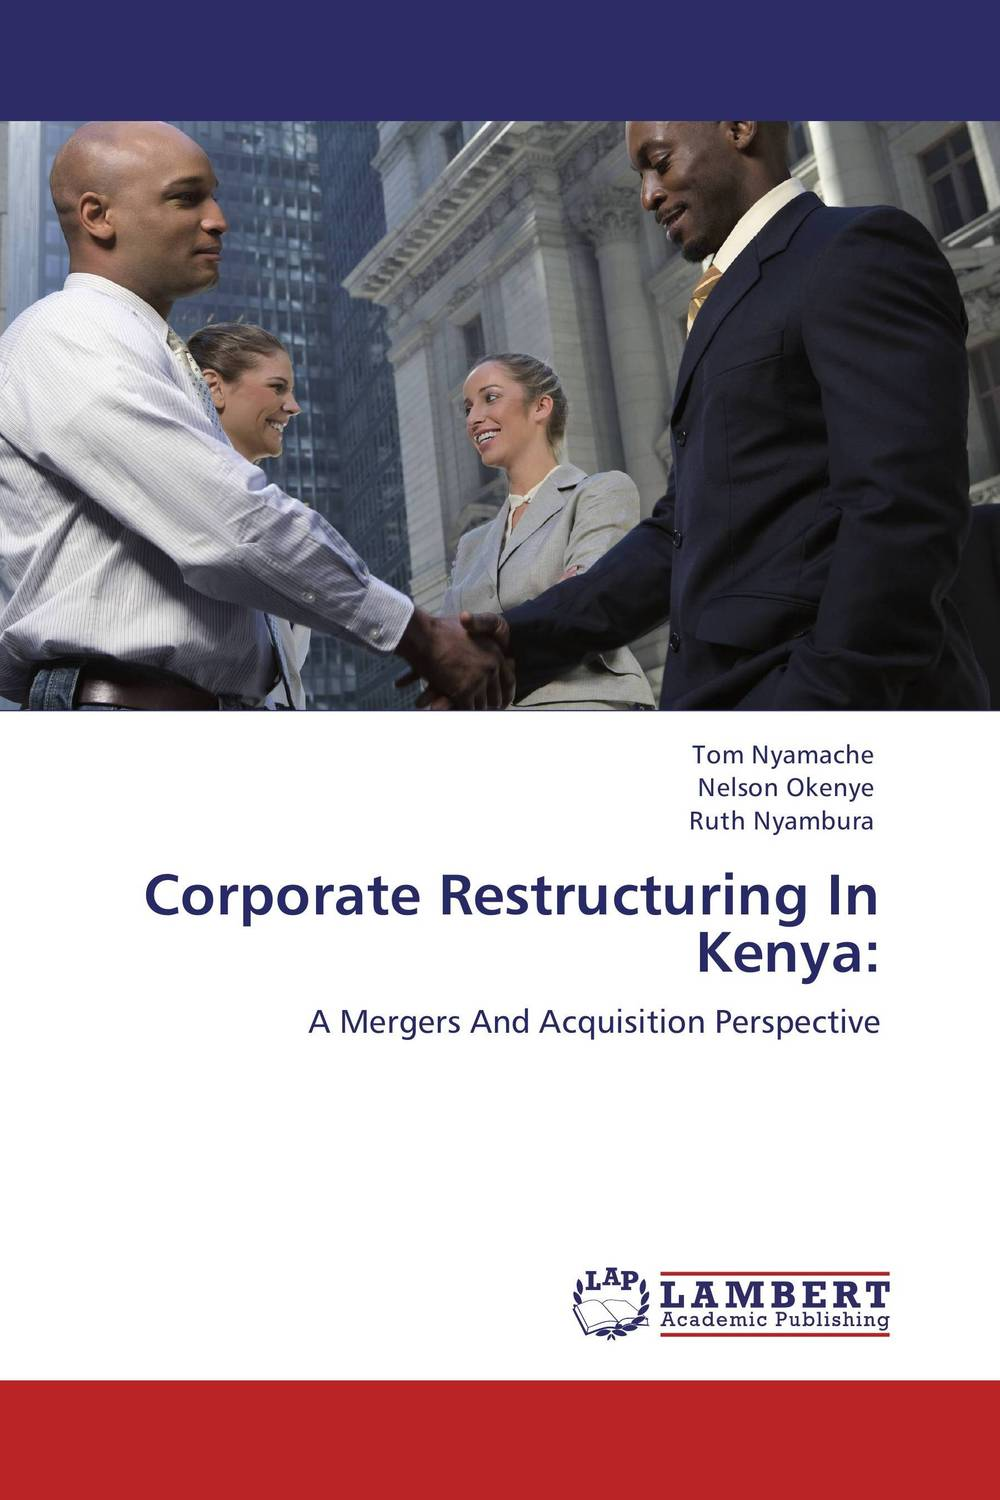 Corporate Restructuring In Kenya: the corporate mergers